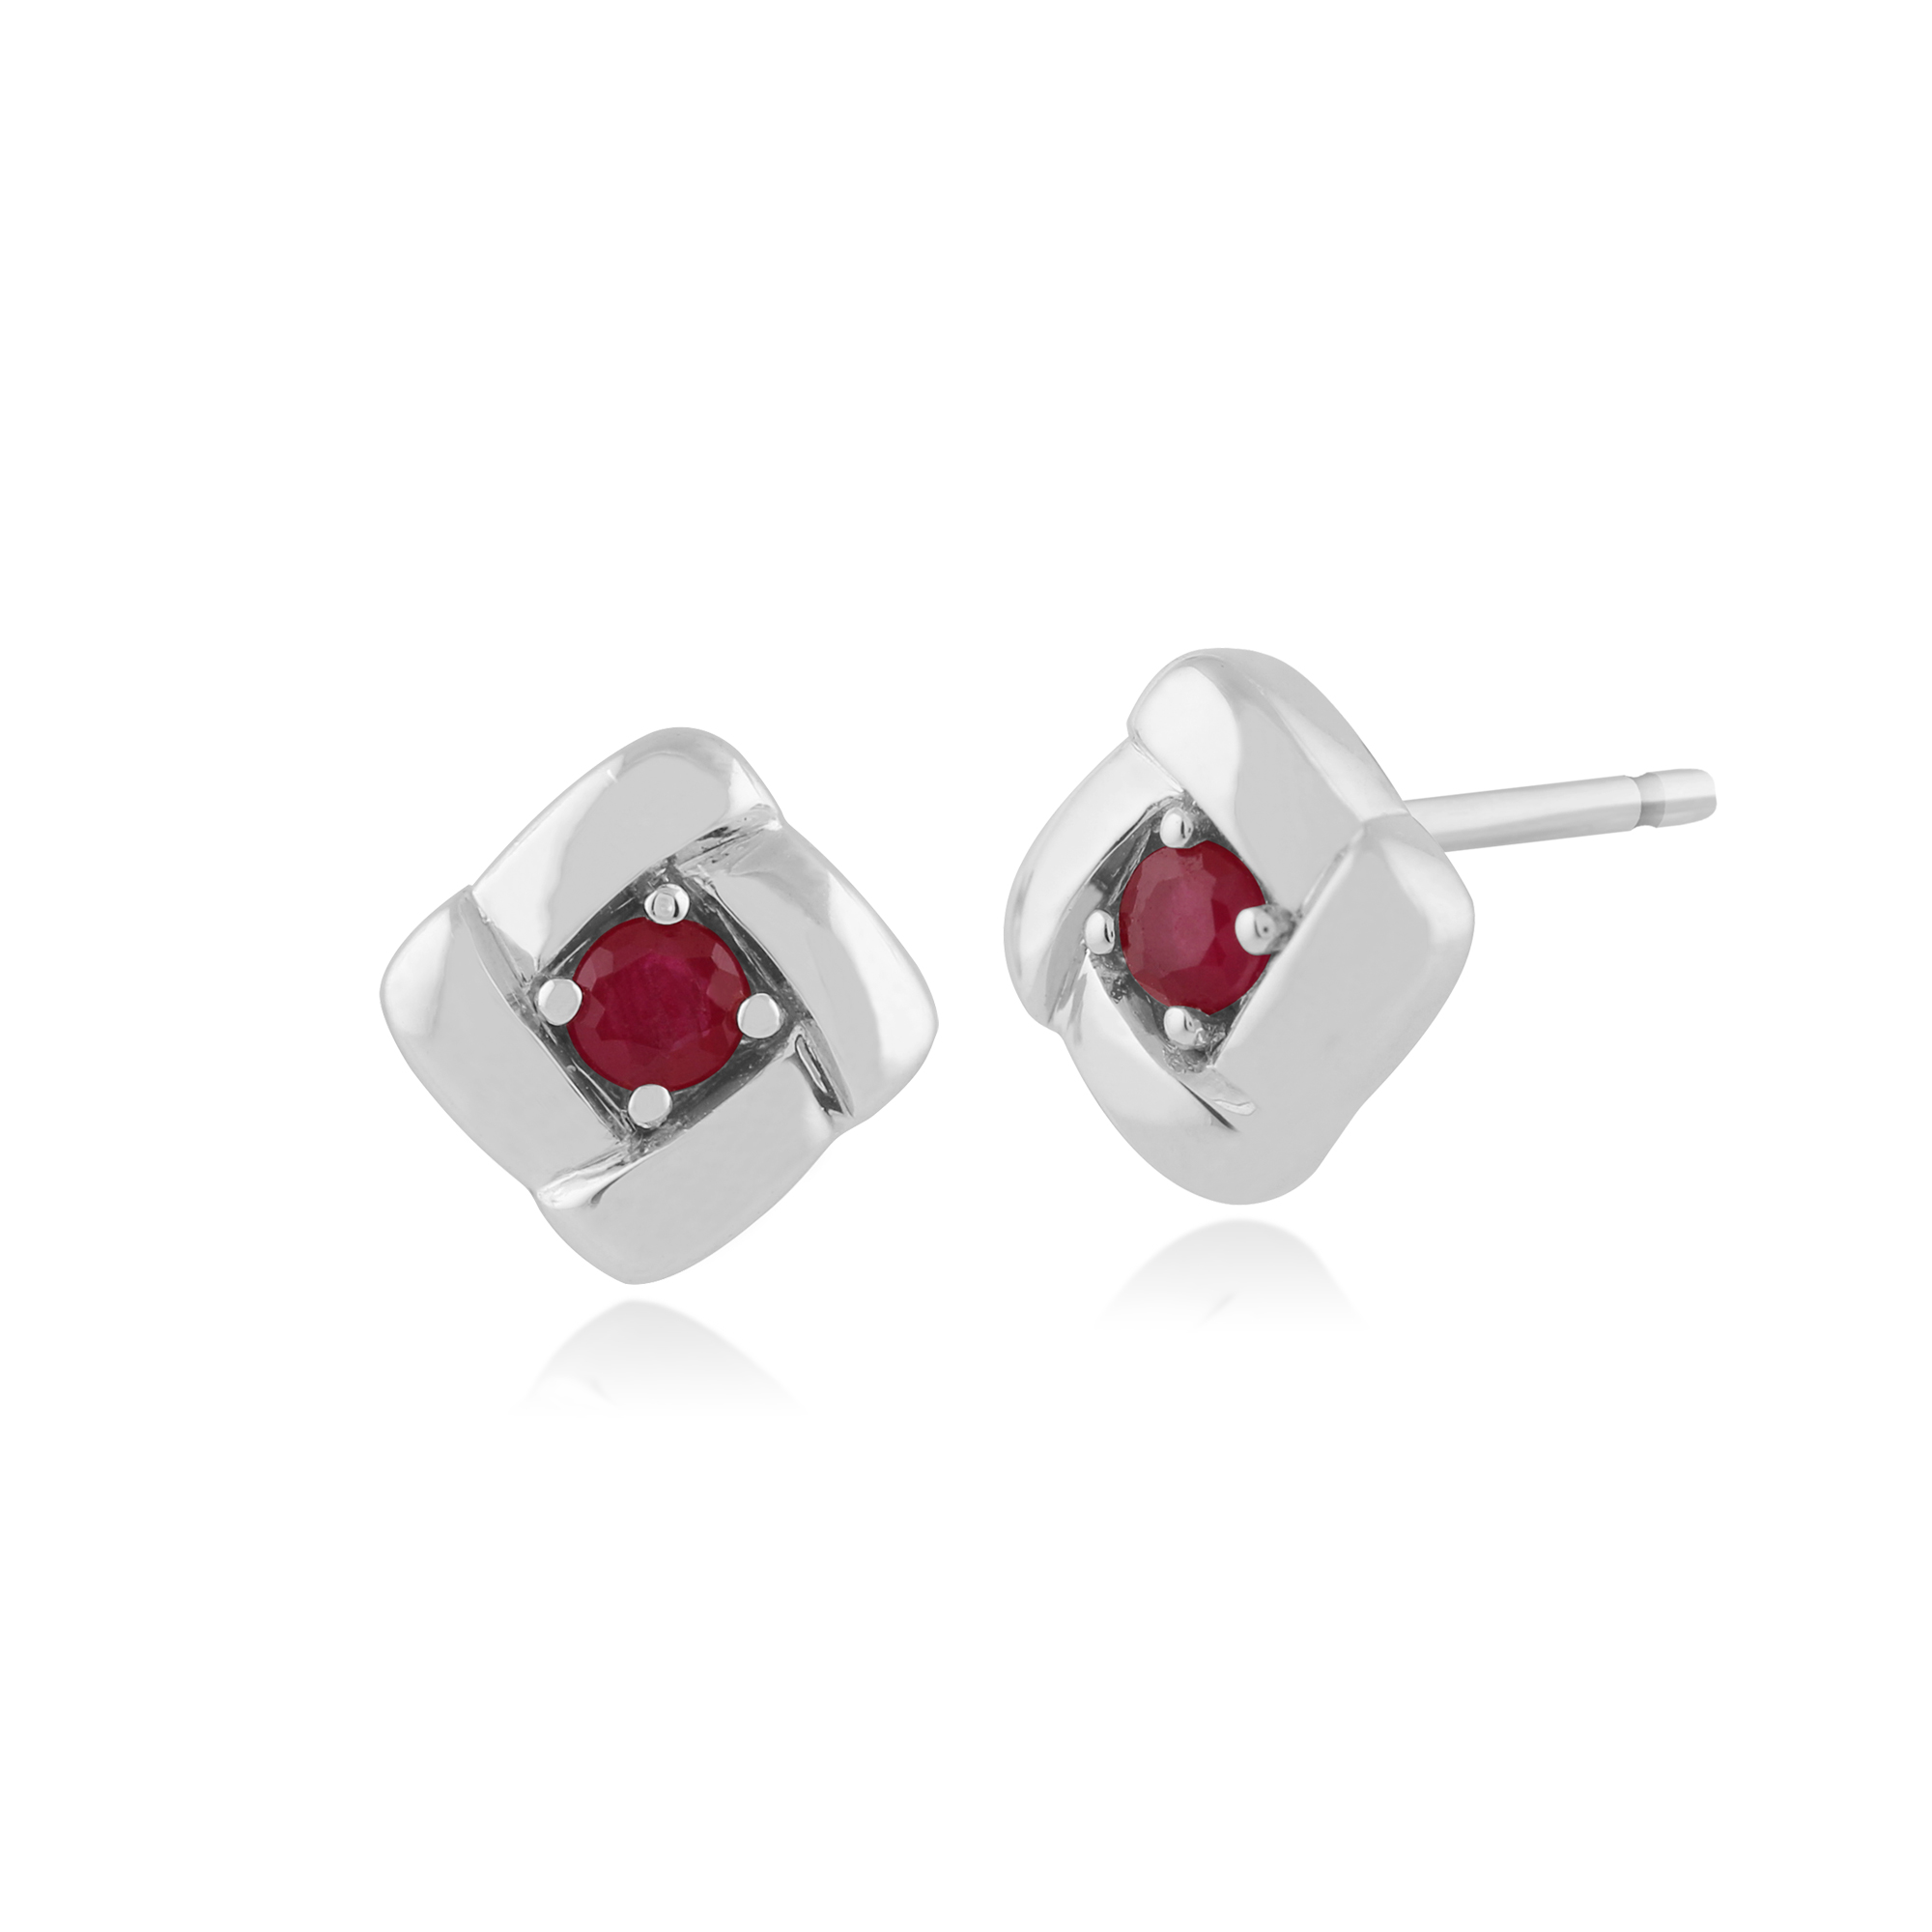 556273579d49 Gemondo 925 Sterling Silver 0.16ct Ruby Square Crossover Stud Earrings